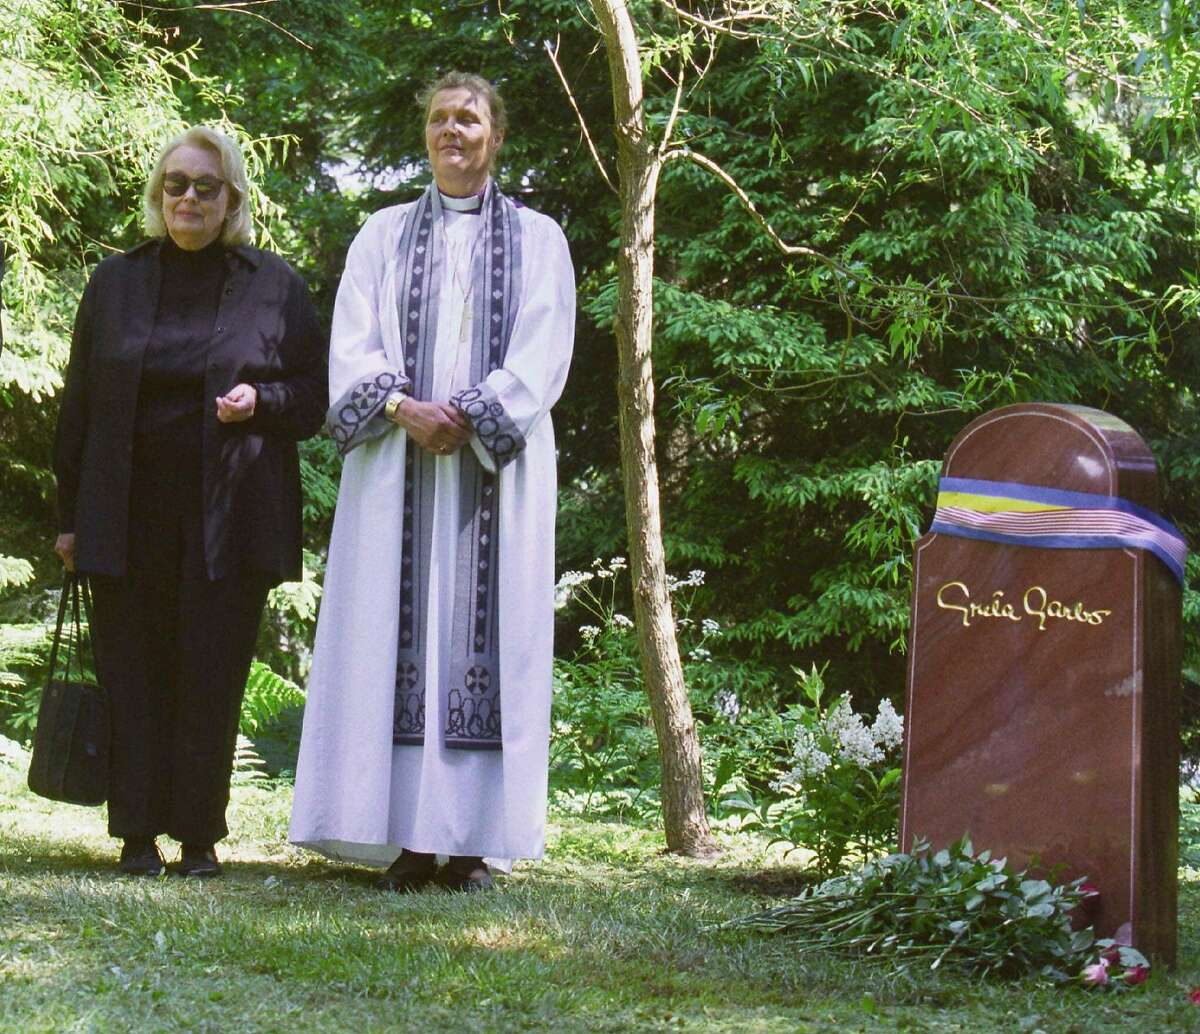 Gray Reisfield, left, and Bishop Caroline Krook stand next to the tombstone of Greta Garbo after the memorial service at the Woodland Cemetery in Stockholm, Sweden, Thursday June 17, 1999. Greta Garbo's ashes were interred in the Woodlands Cemetery Wednesday. Gray Reisfield is the niece and only heir of the 1930s Hollywood film legend. (AP photo/Pressens Bild/Tobias Rostlund) SWEDEN OUT MAGAZINES OUT NO SALES TV OUT